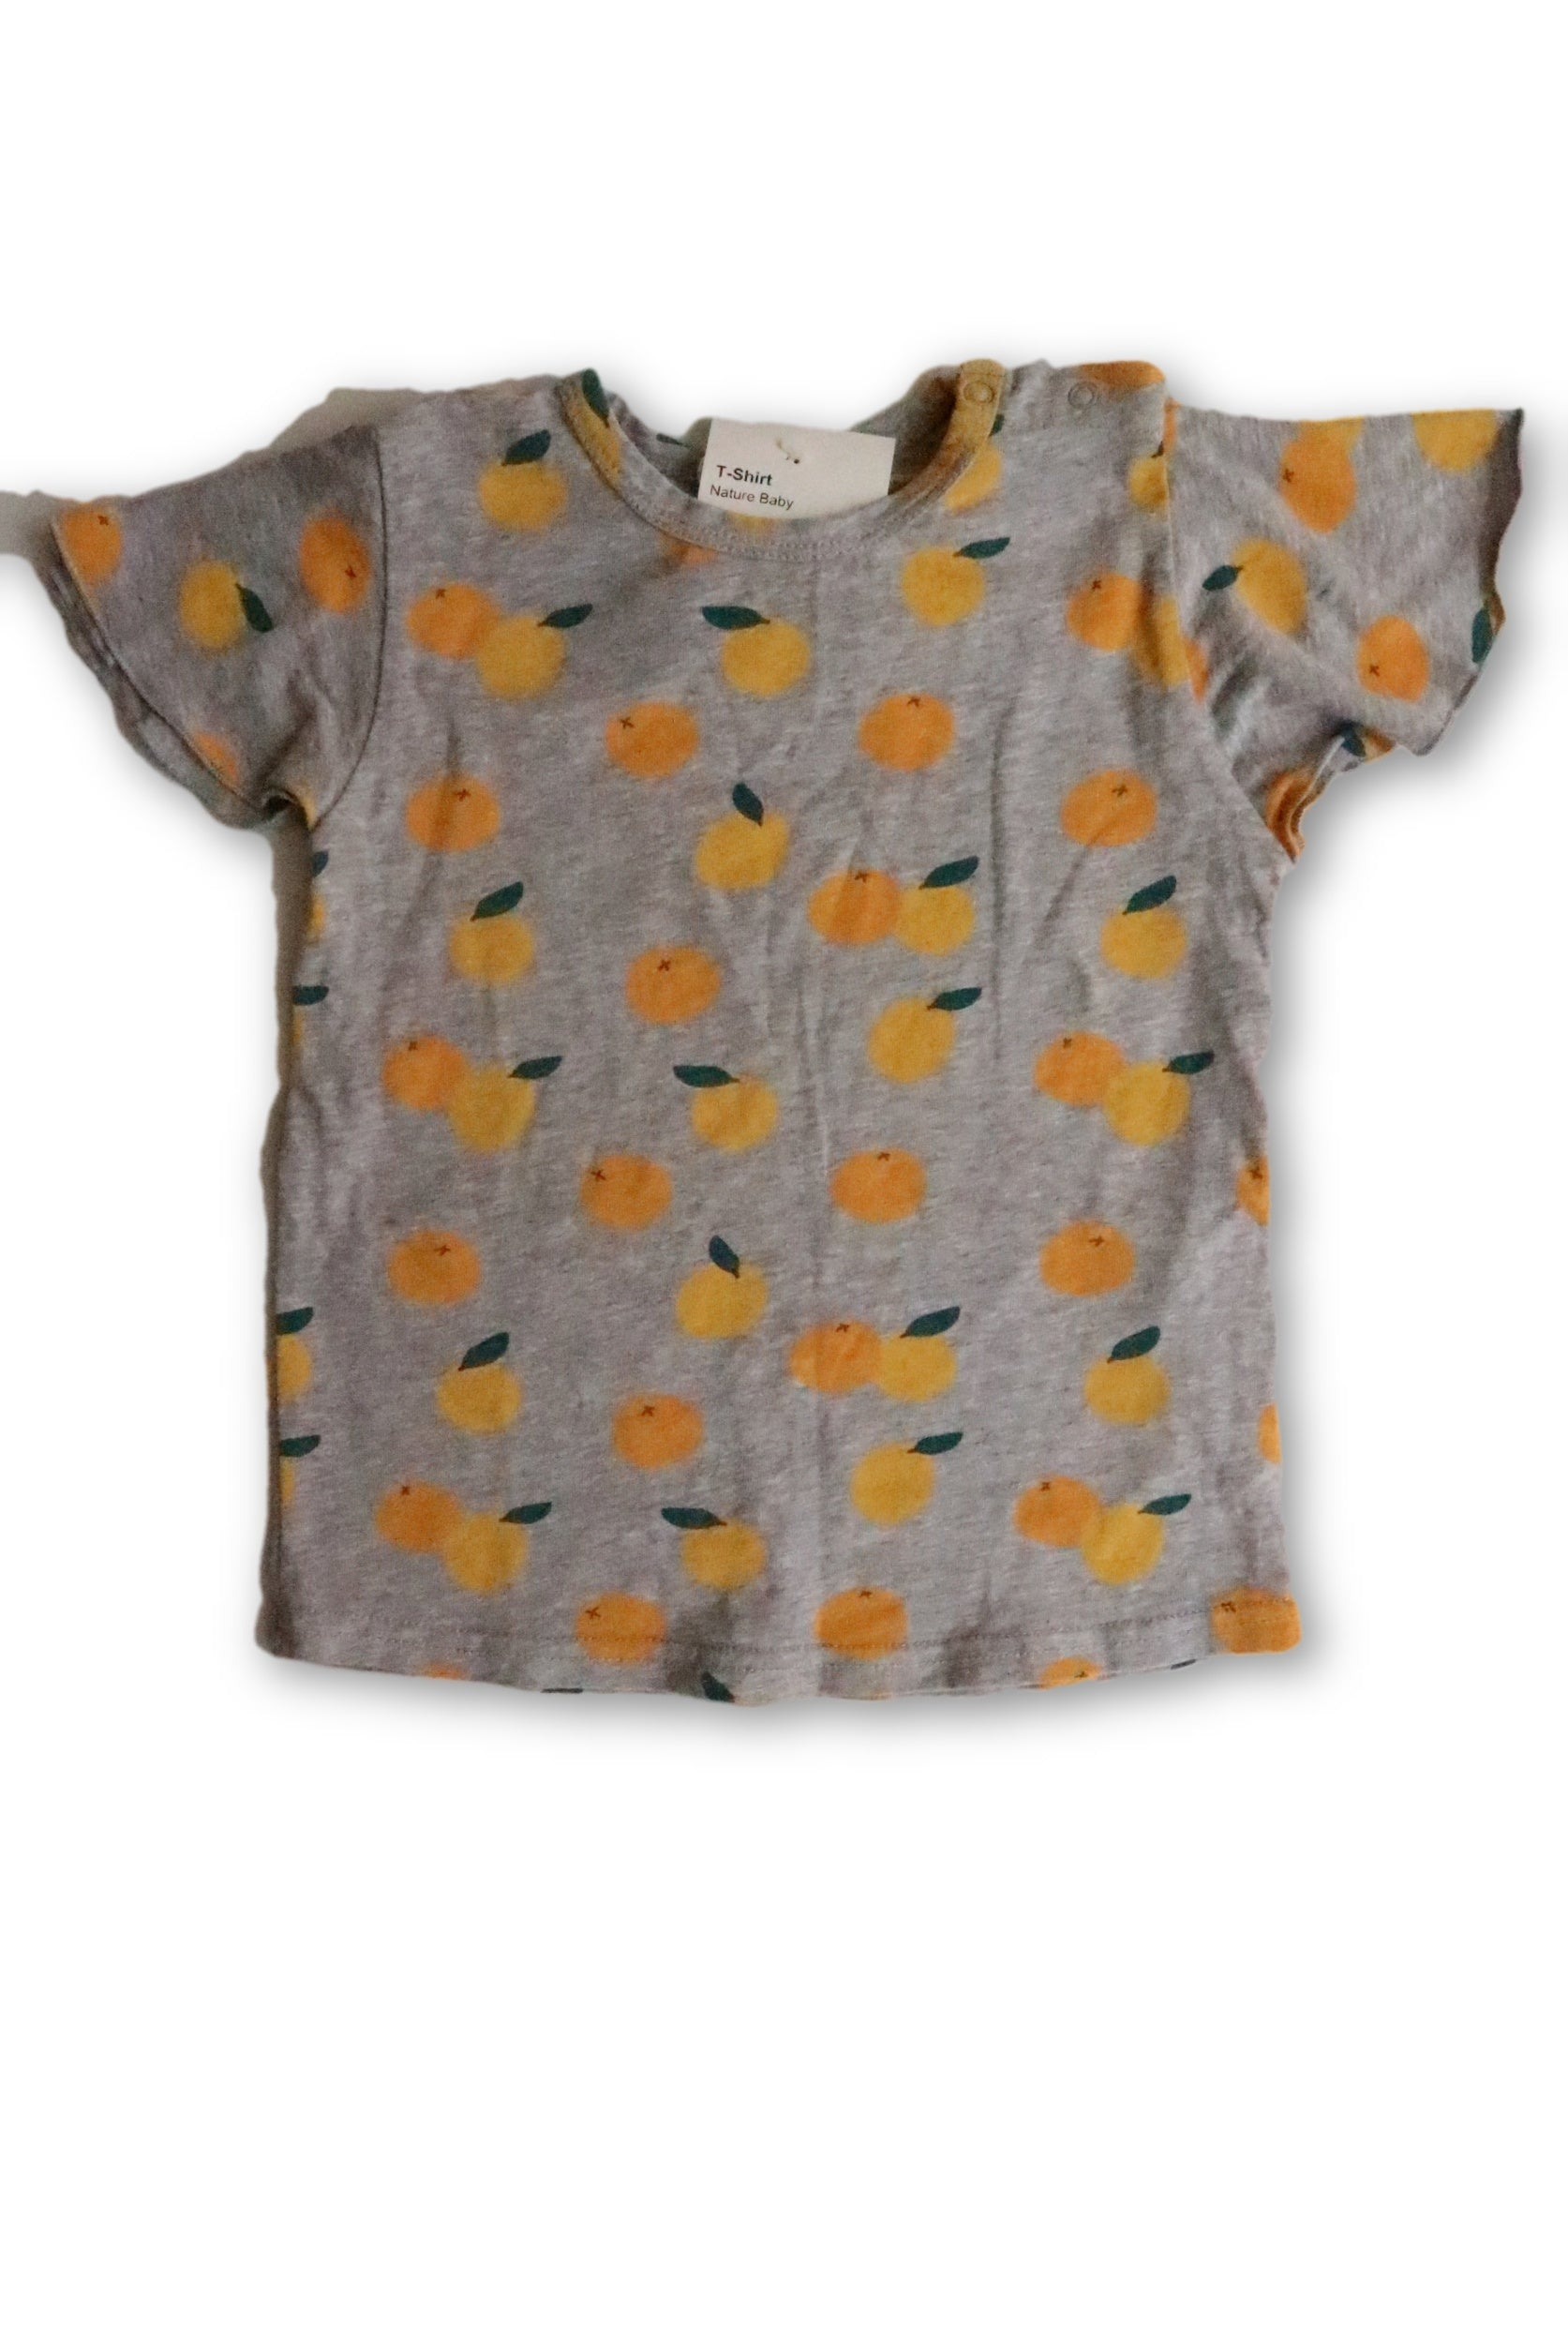 Nature Baby T-Shirt size 2